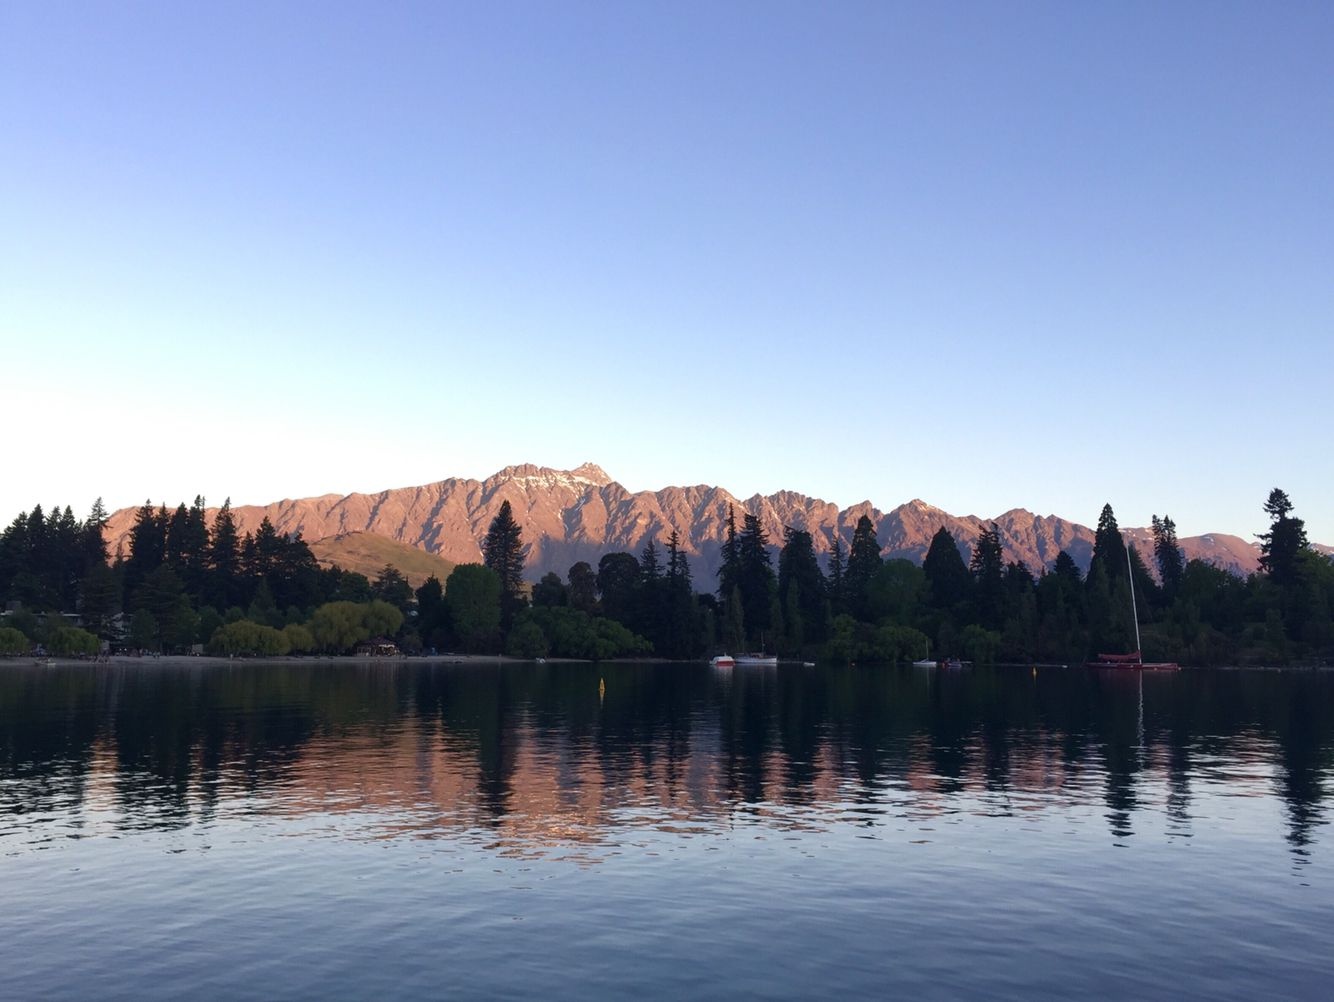 I can be still and know that you are God - Queenstown